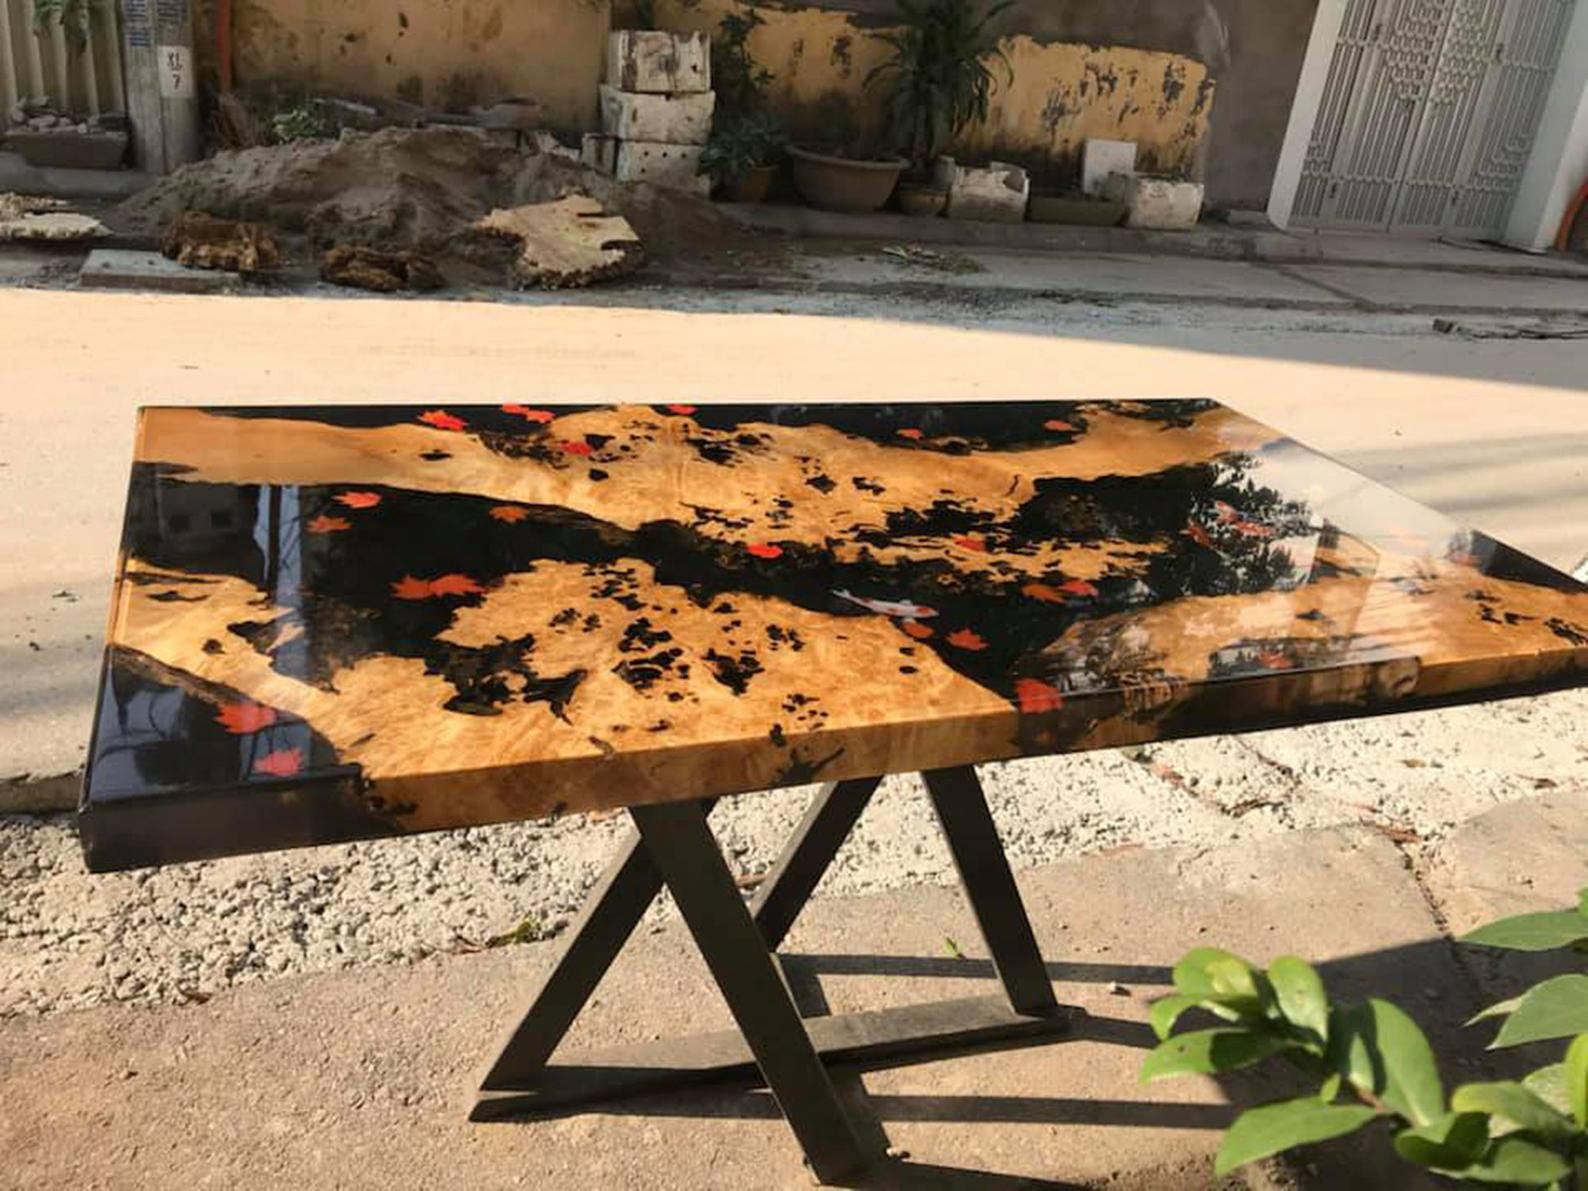 Epoxy Resin Transparent Coffee Table Handcrafted Custom 3d Fish Draw Most Beautiful Table Made To Order Resin And Wood Diy Wood Resin Table Epoxy Wood Table